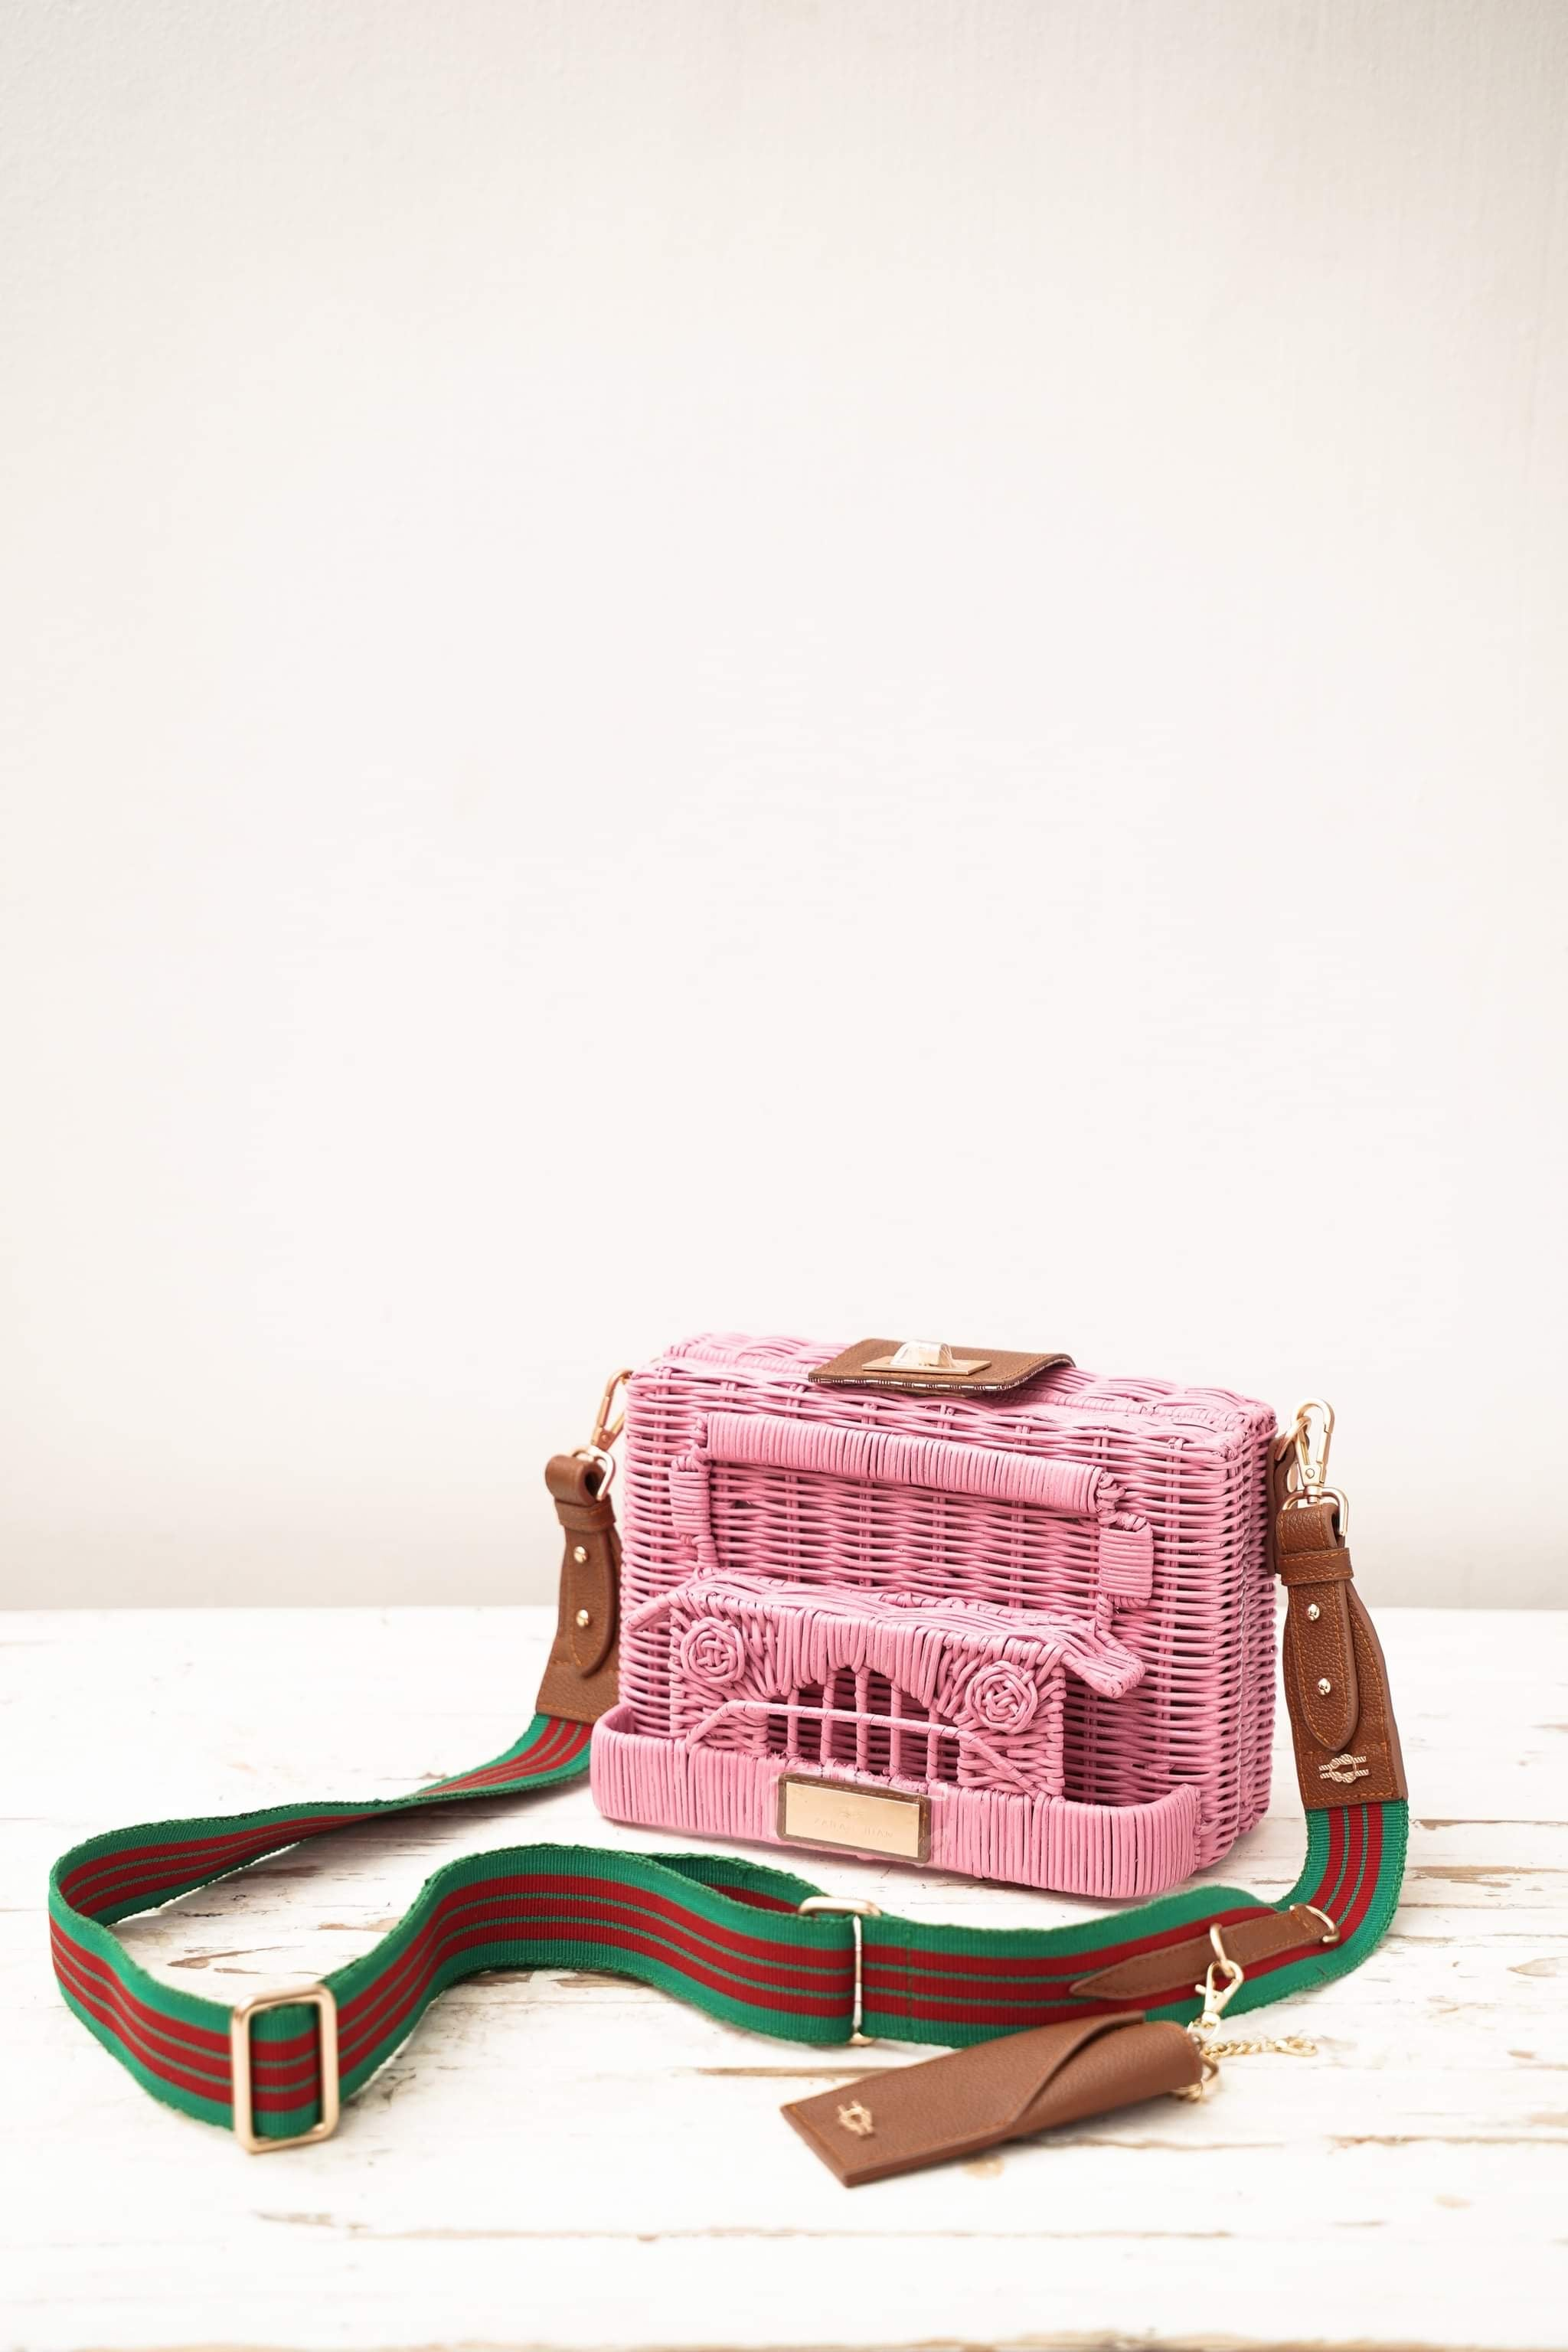 PUJ Clutch Bag in Kalimbahin (Pink)